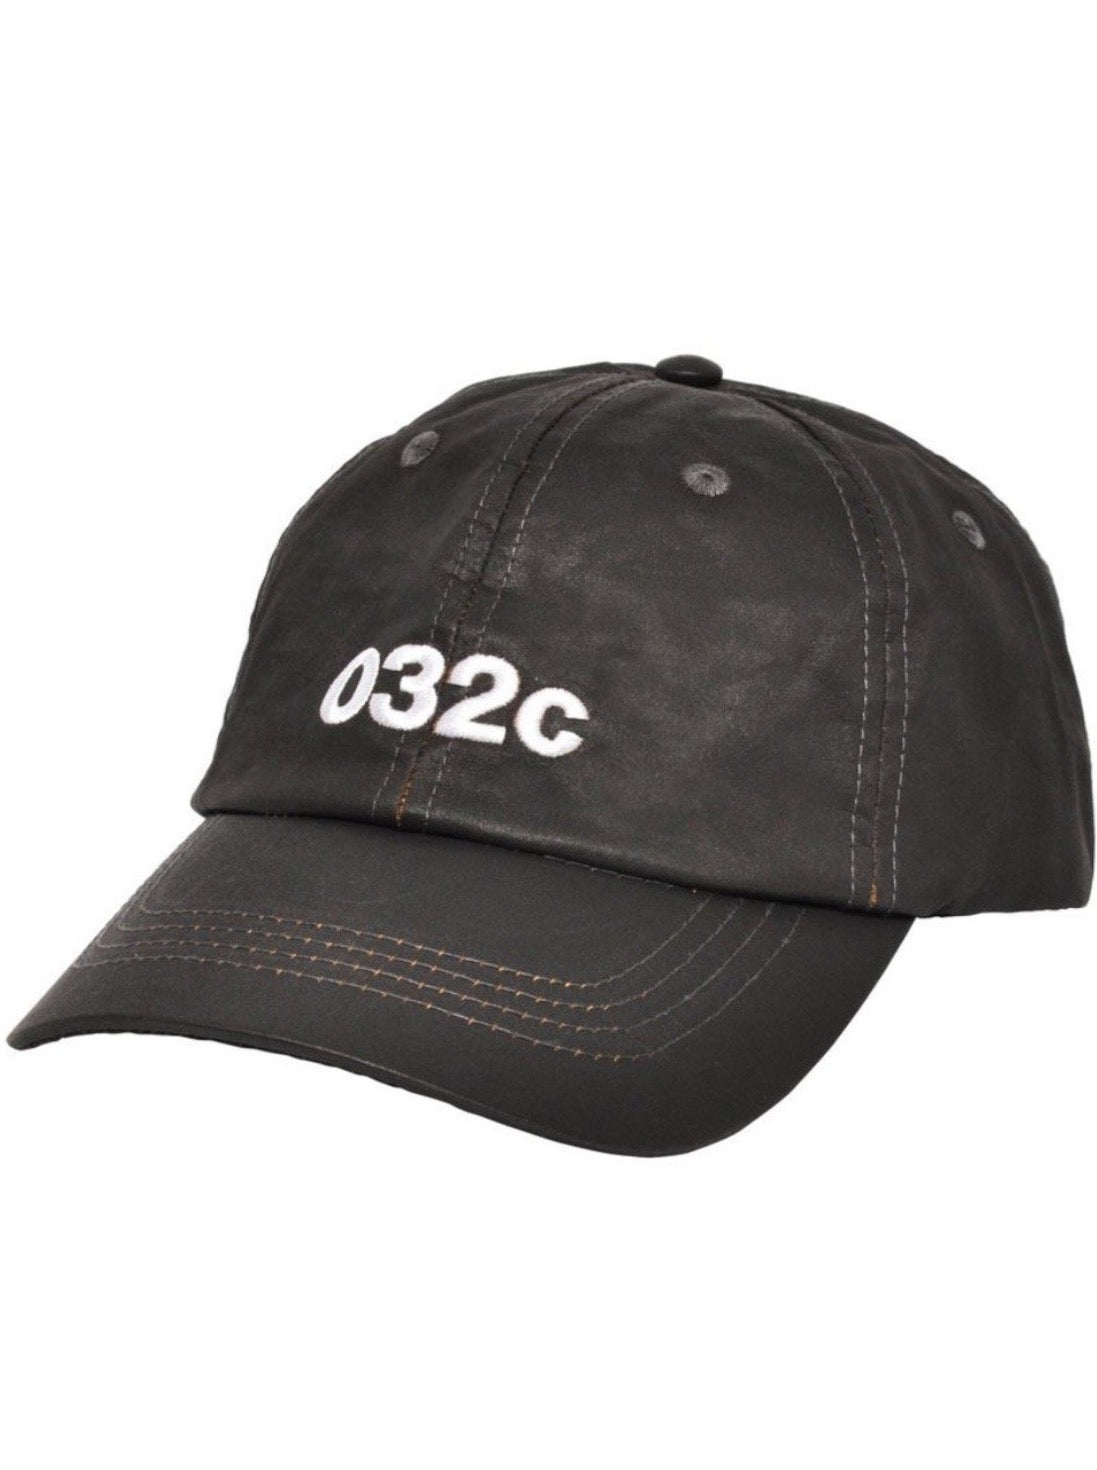 032C CAP WITH 3D EMBROIDERY